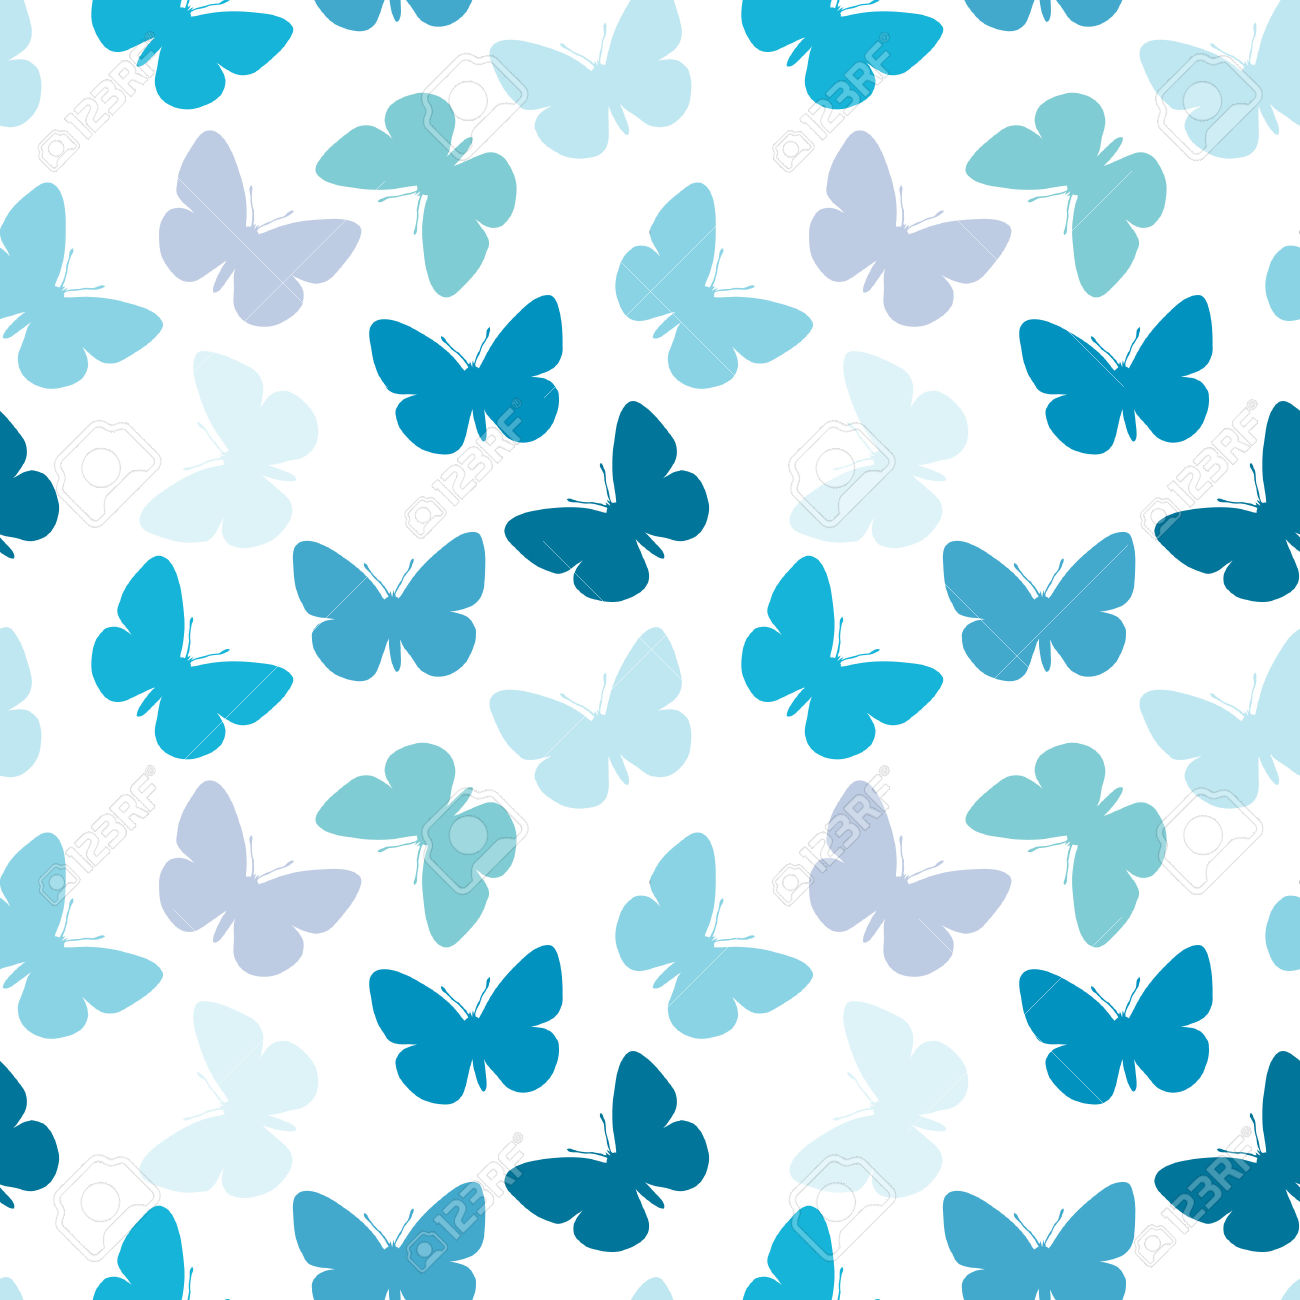 Butterfly HD Wallpapers  Backgrounds  Wallpaper  1300x1300